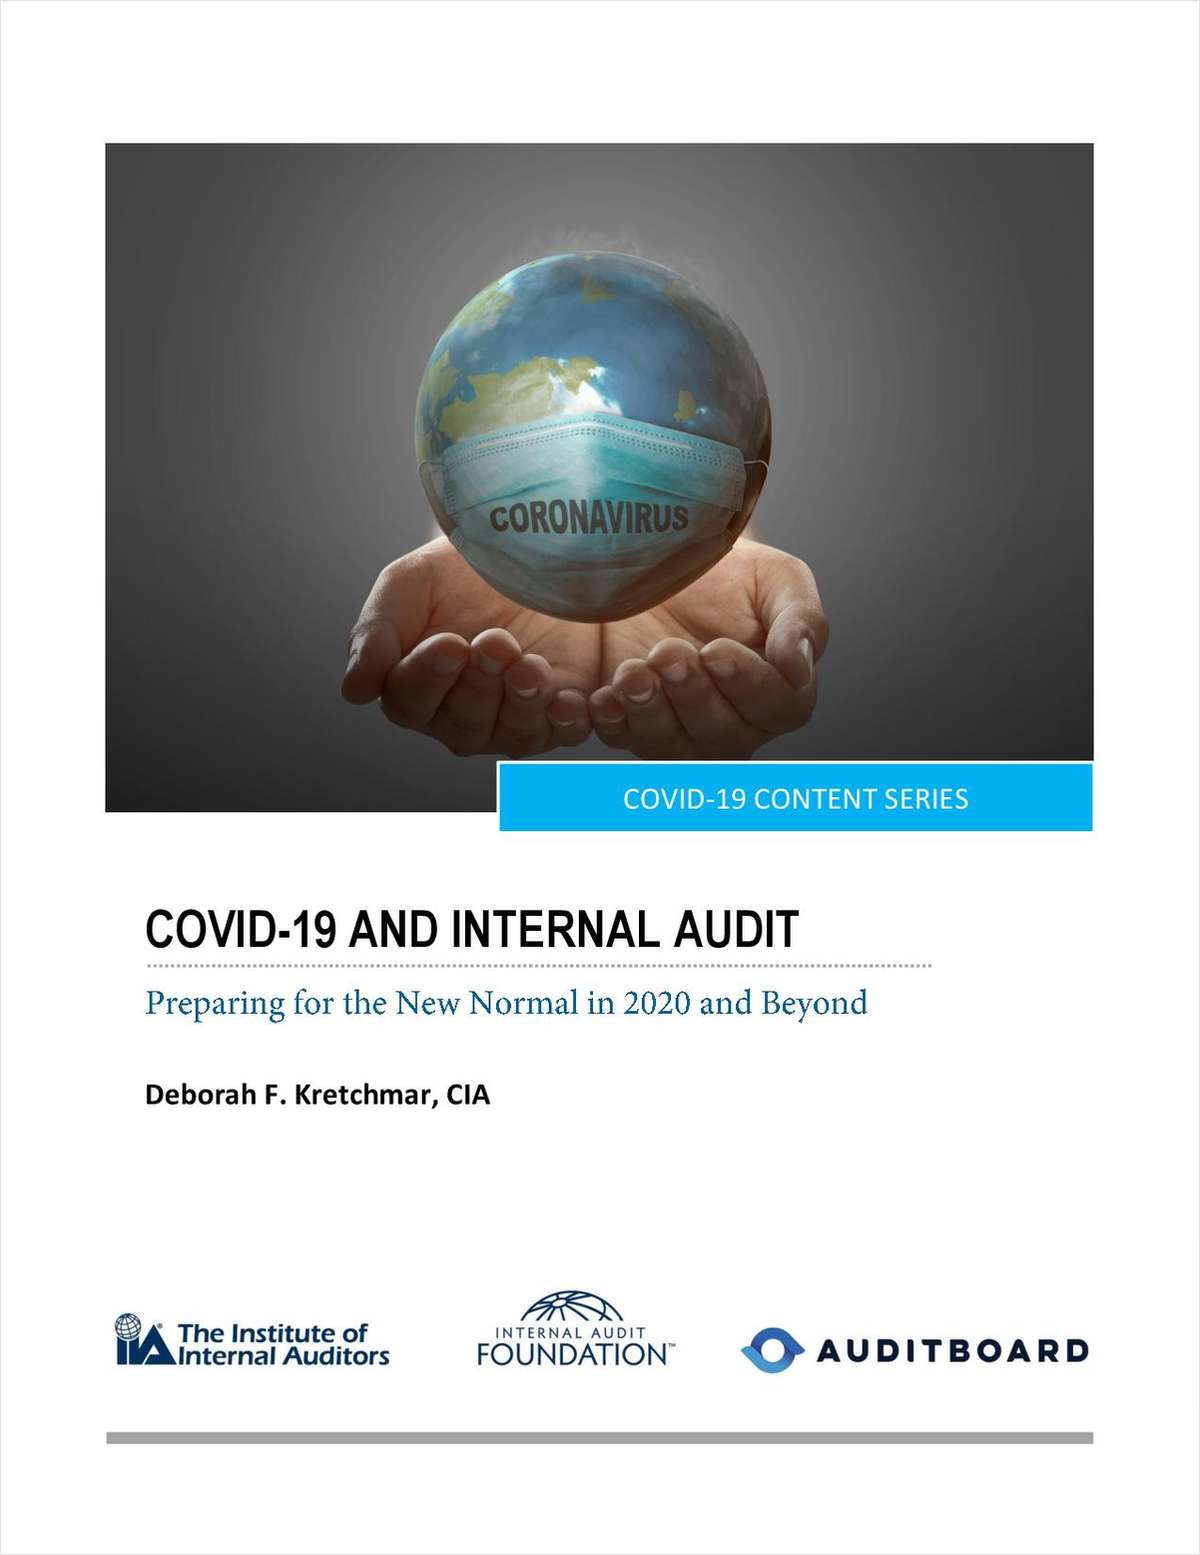 COVID-19 & Internal Audit: Preparing for the New Normal in 2020 and Beyond